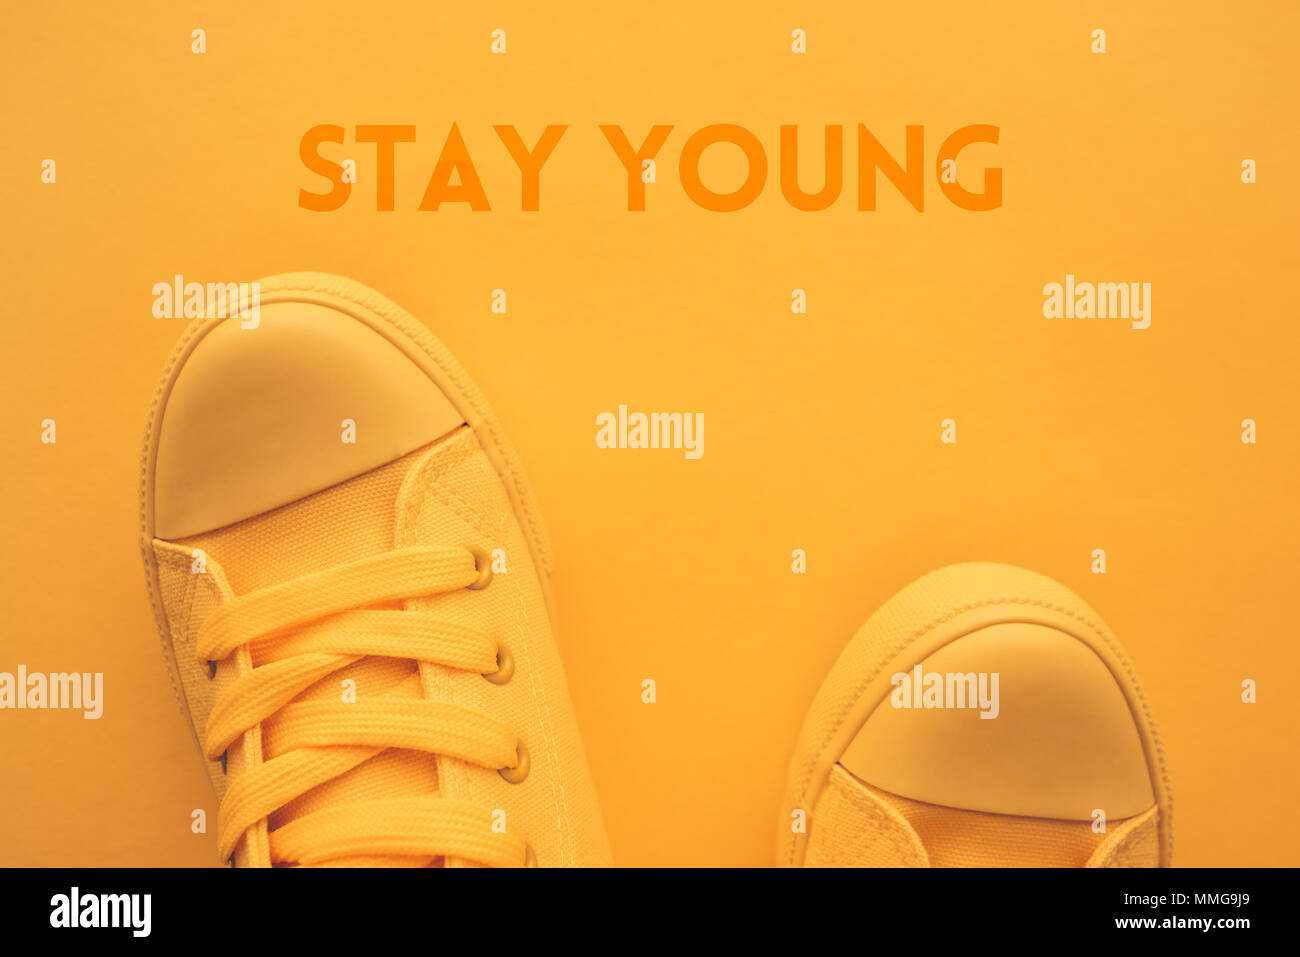 Stay young concept with top view of teenager's feet in stylish yellow sneakers - Stock Image